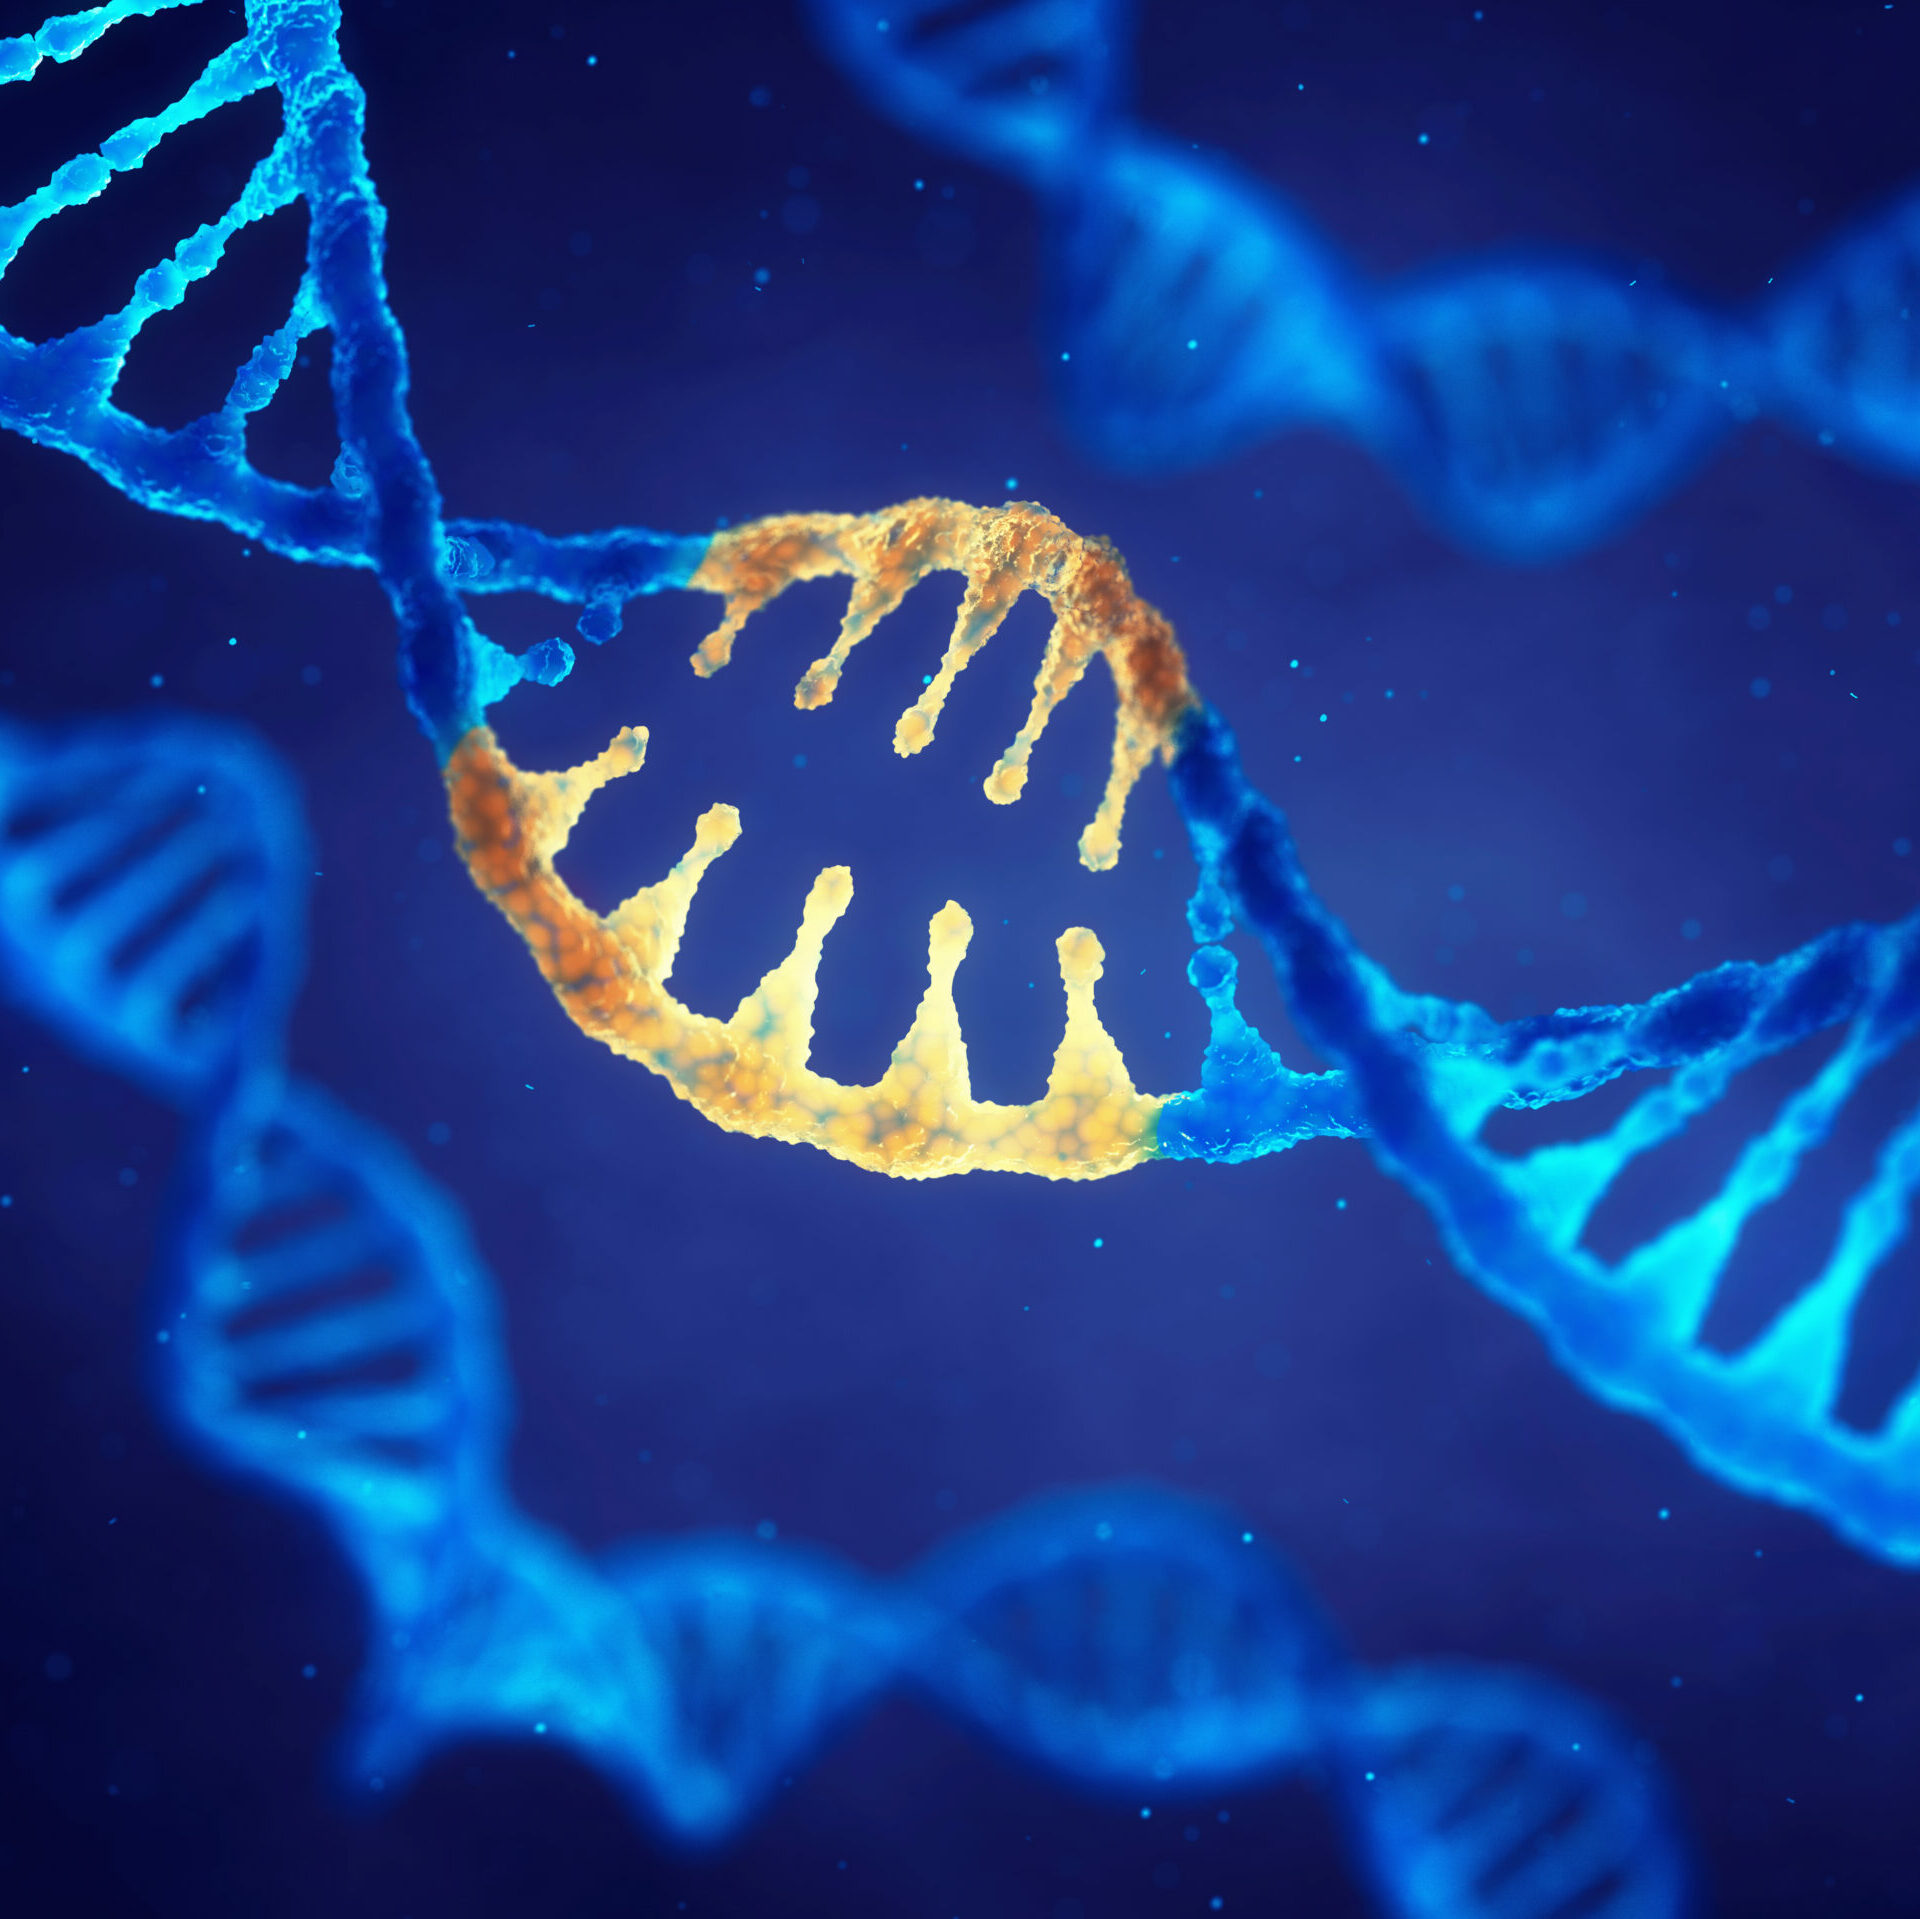 Understanding ALS-Related Genes Leads to New ALS Therapeutic Insights